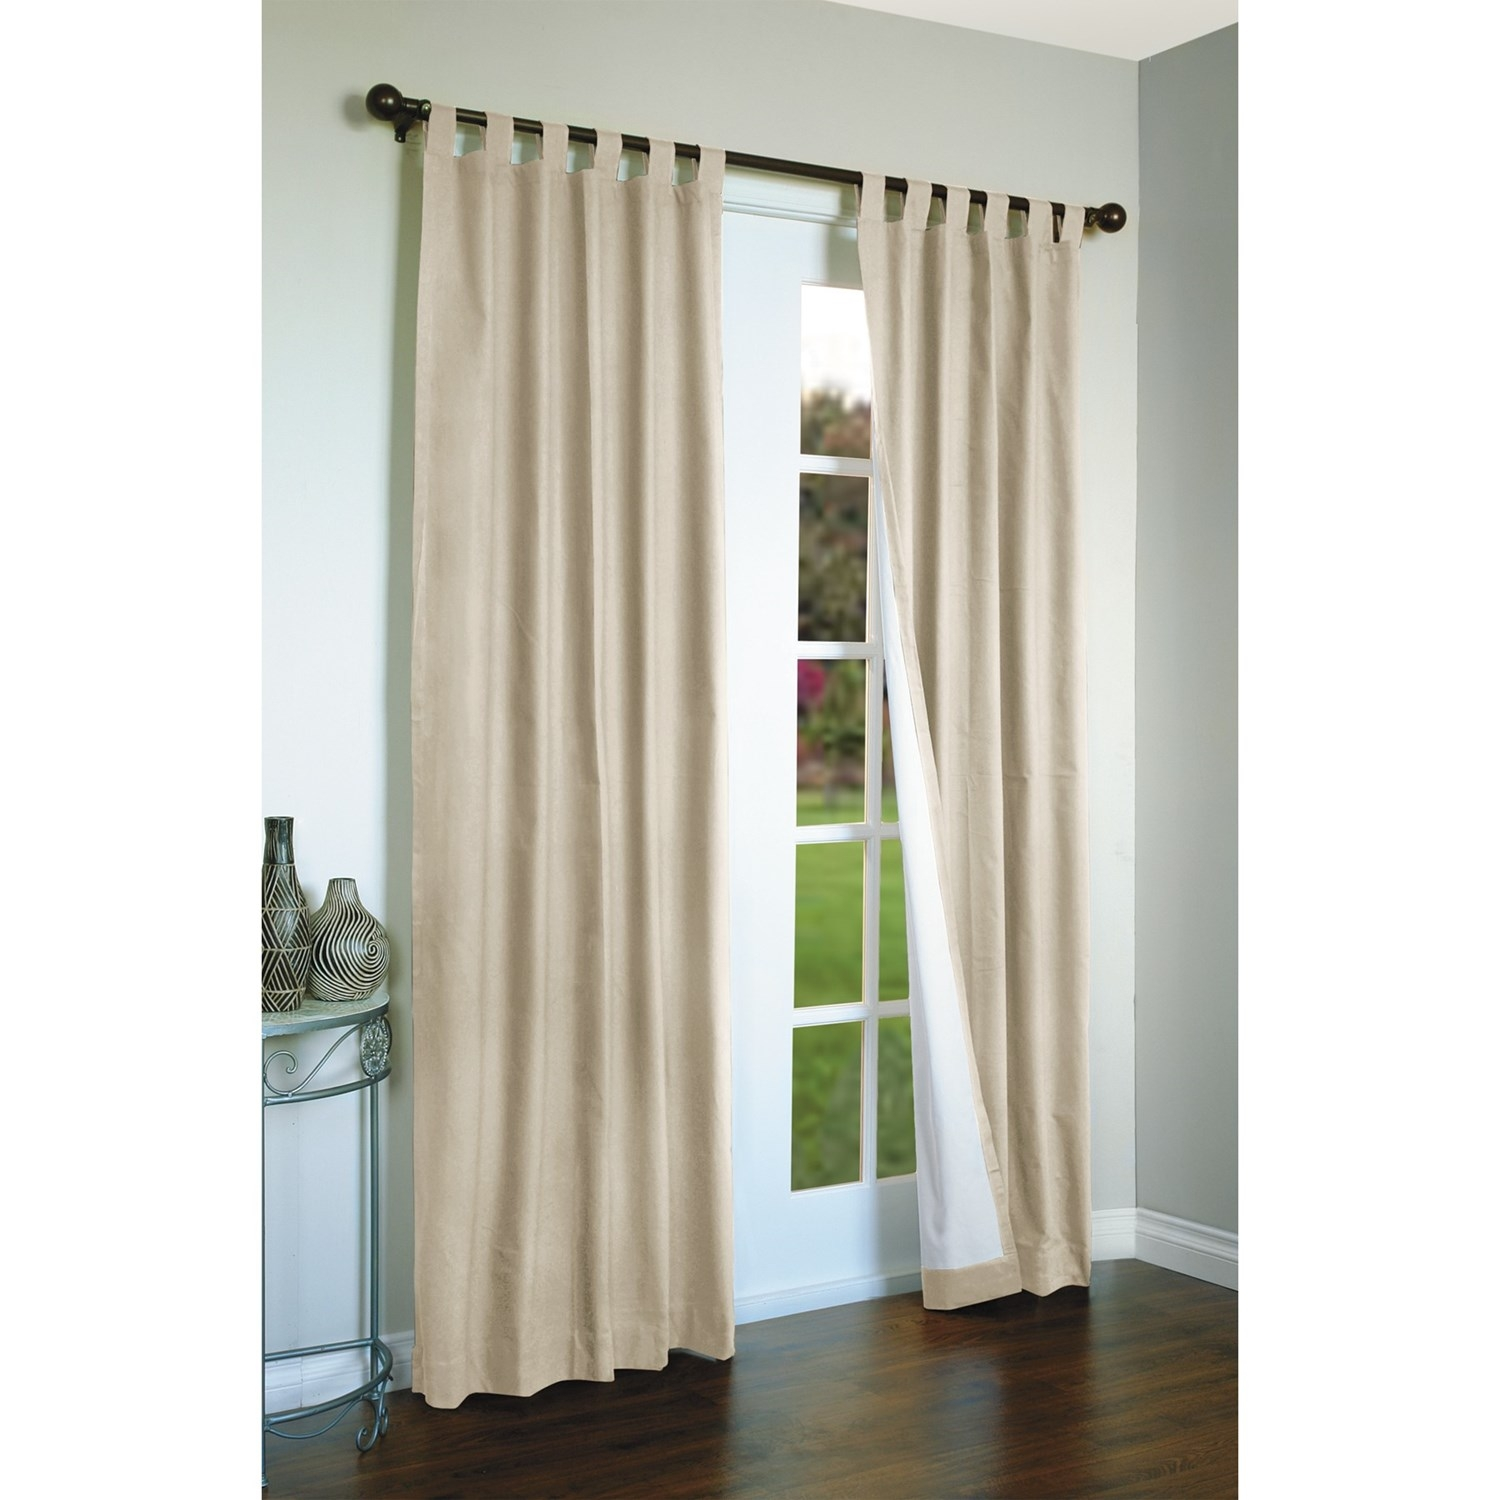 Curtains Ideas White Blackout Curtains Made To Measure Intended For Plain White Blackout Curtains (Image 8 of 15)